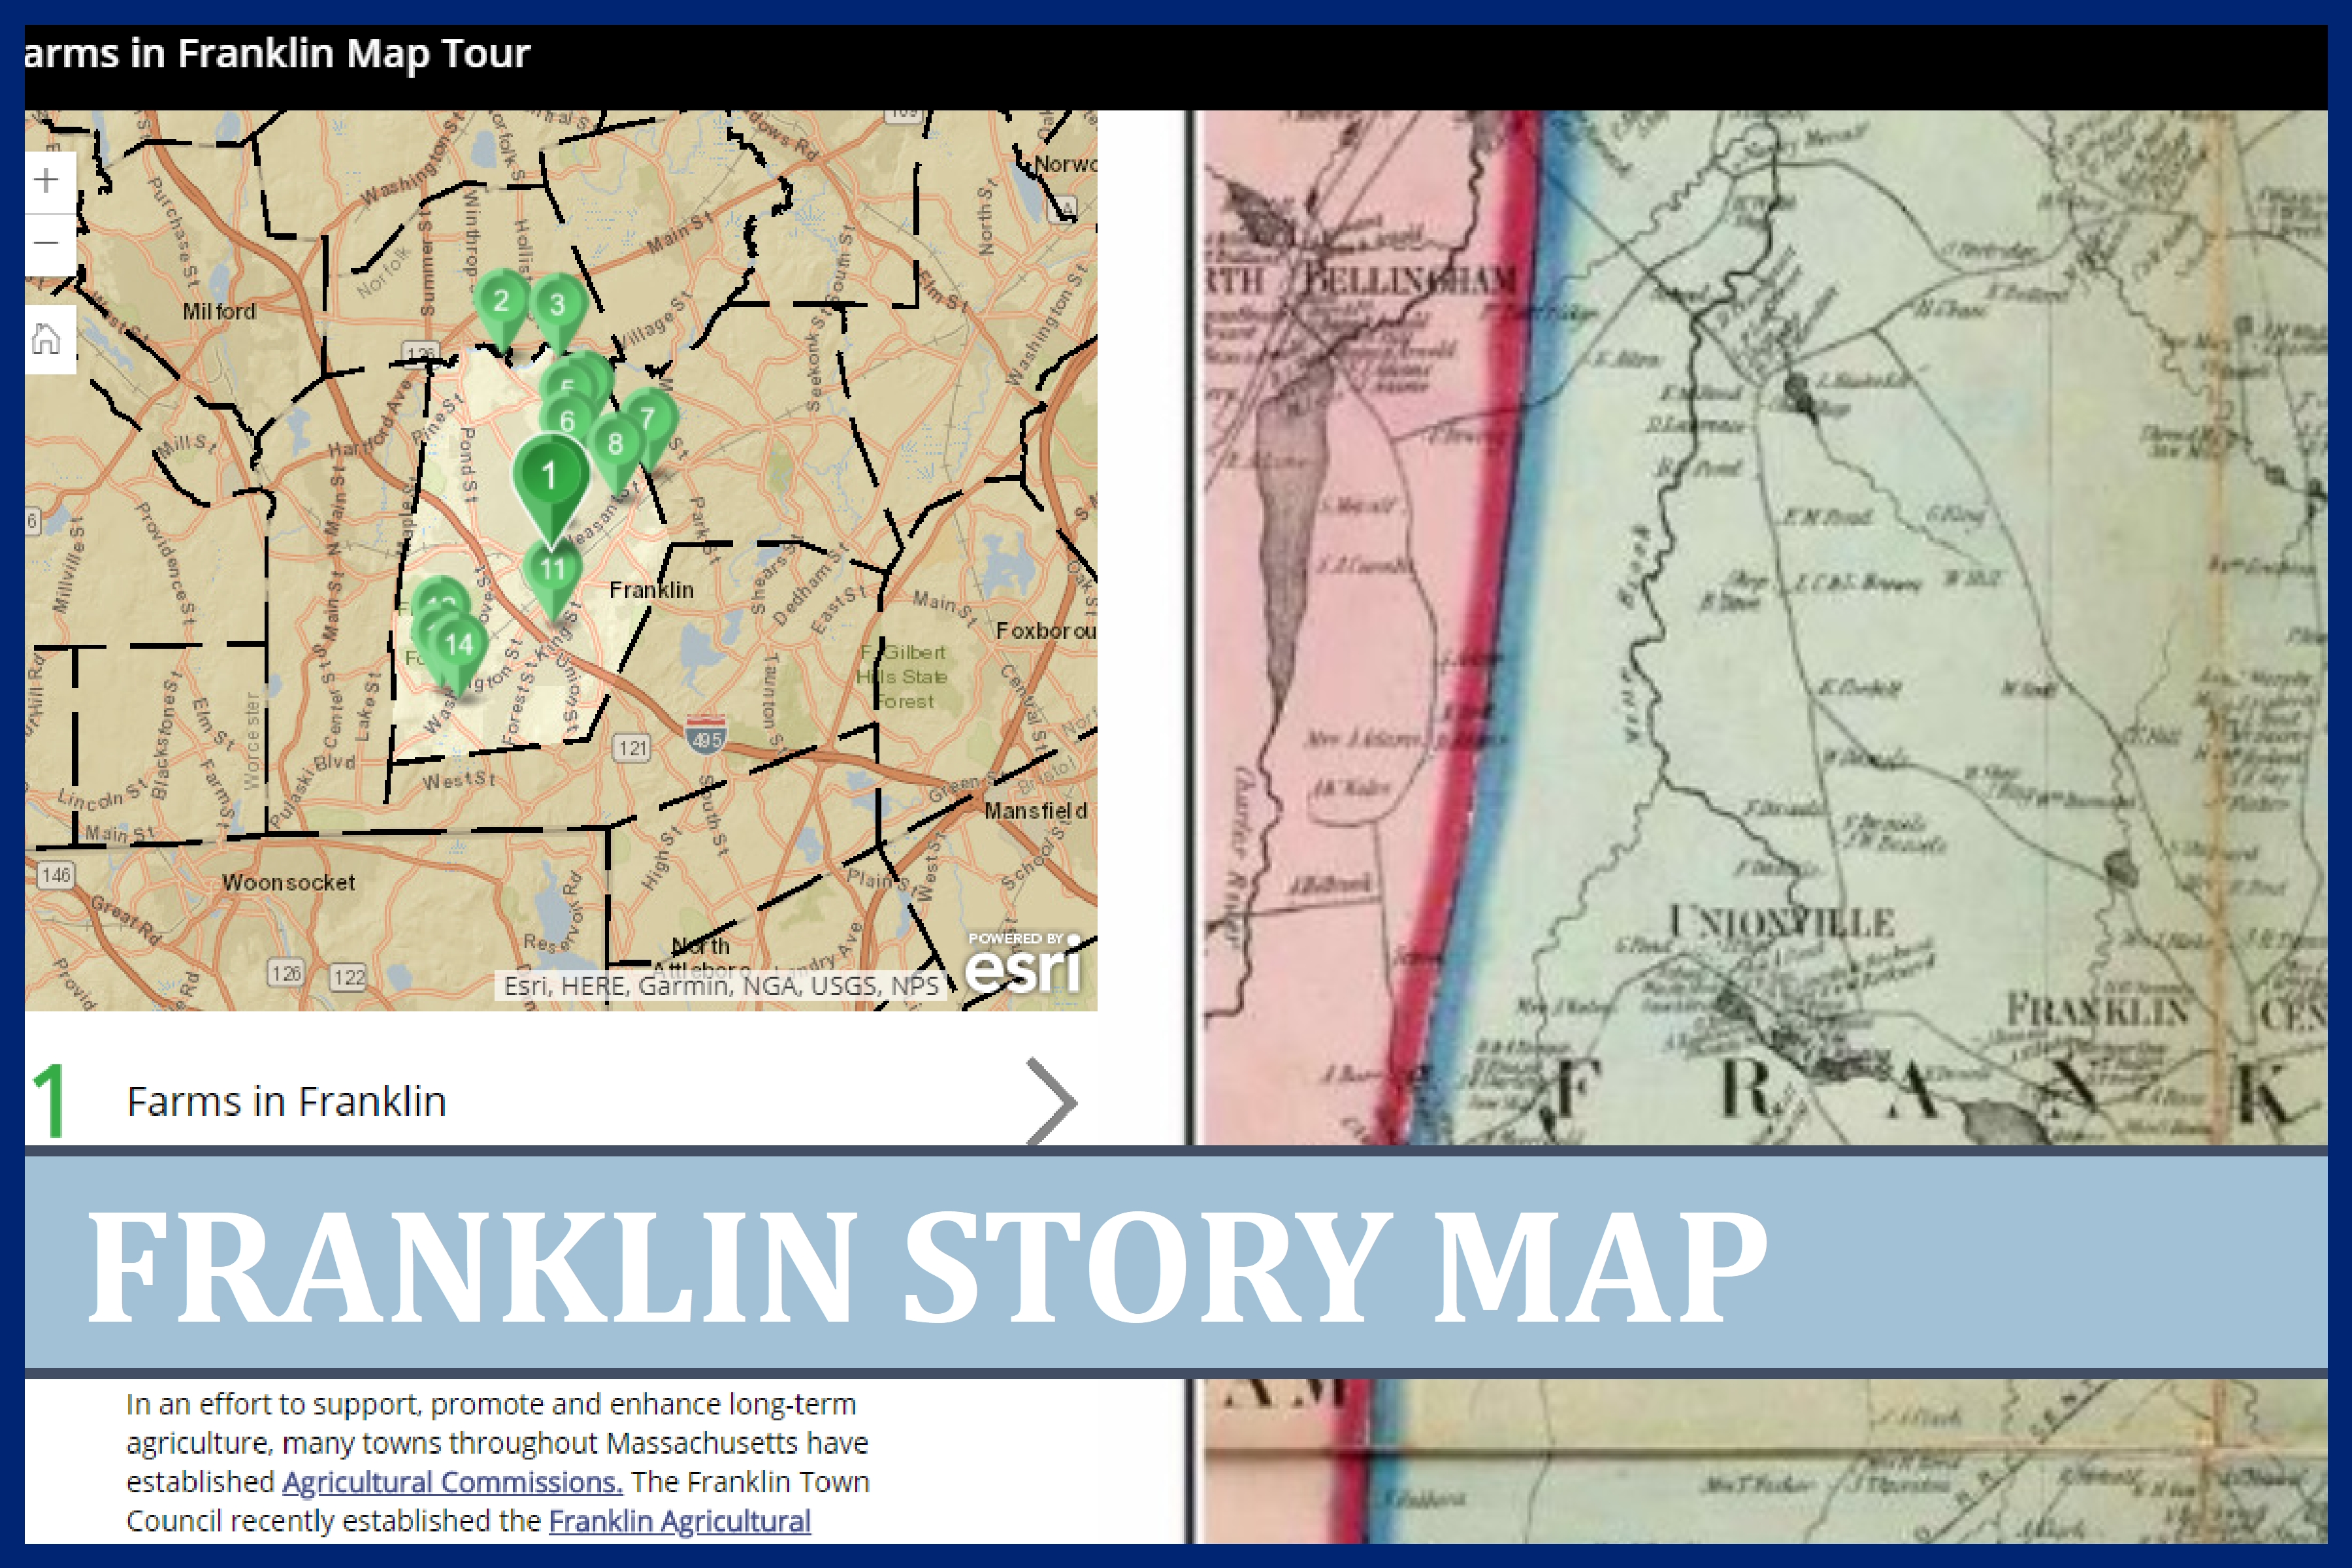 Farms in Franklin story map image